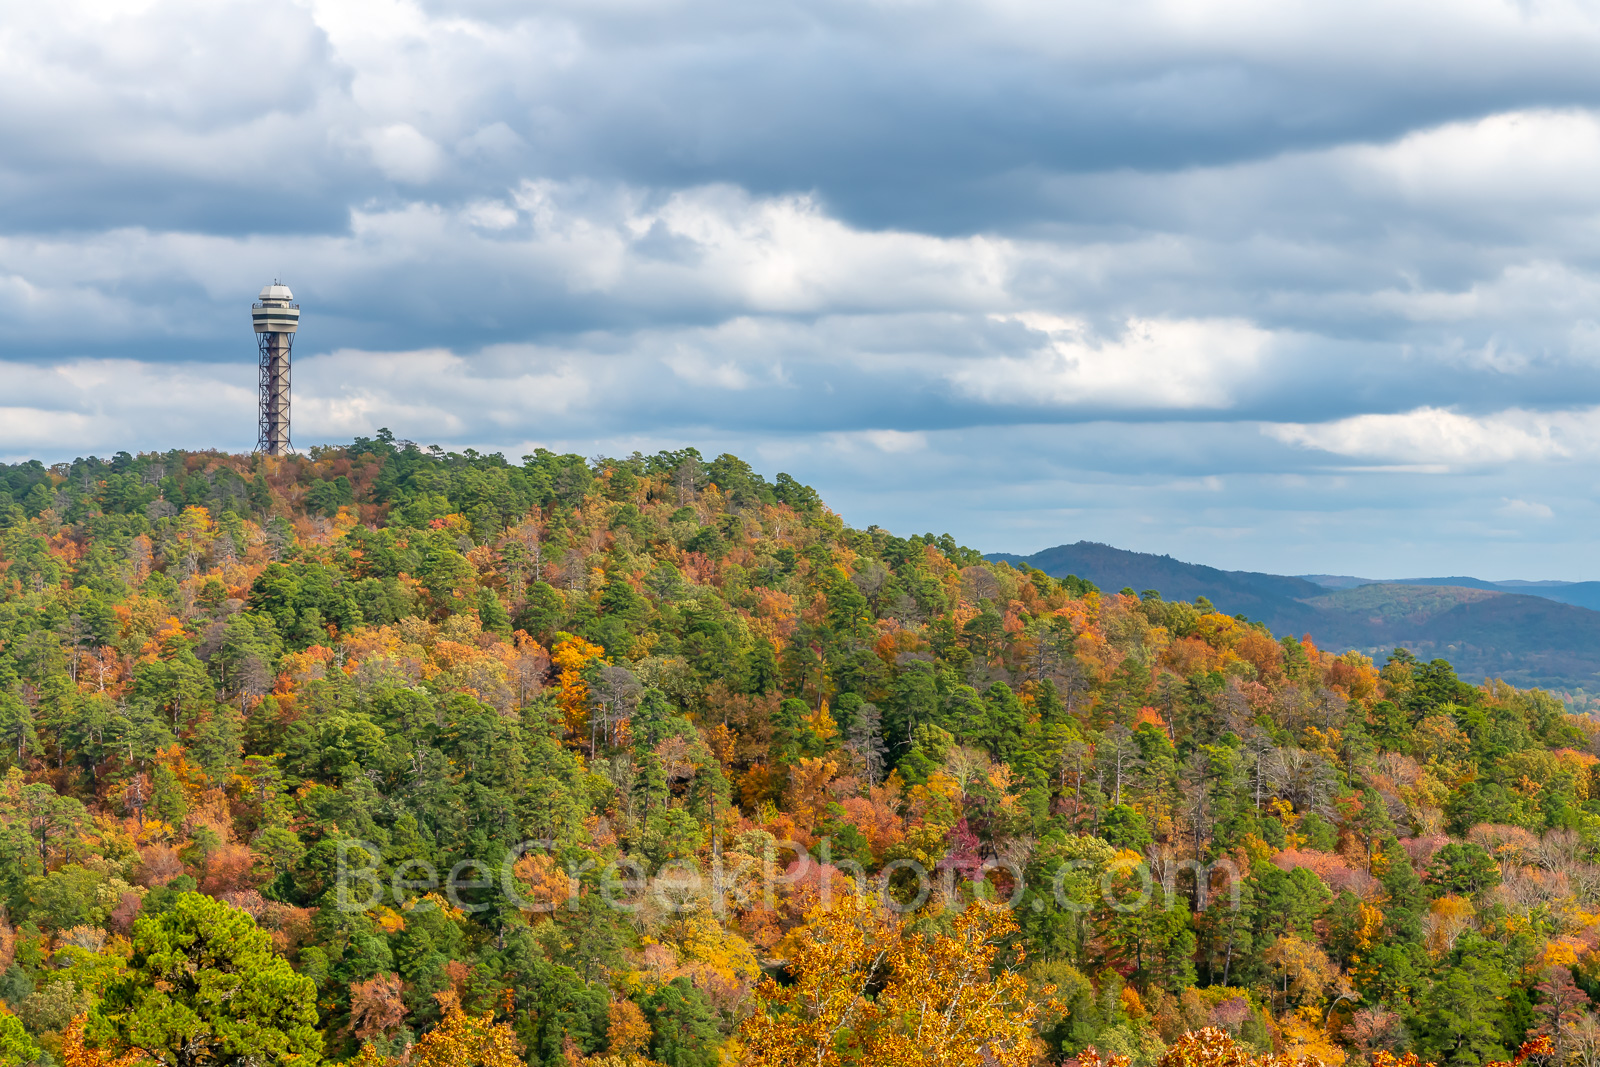 fall, tower mountain, colors, Hot Spring, Arkansas, National Forest, hill side, moody, skies, everygreen, pines, orange, pink, sugar maples, red maples, yellow, black hickory, sweet gym,, photo